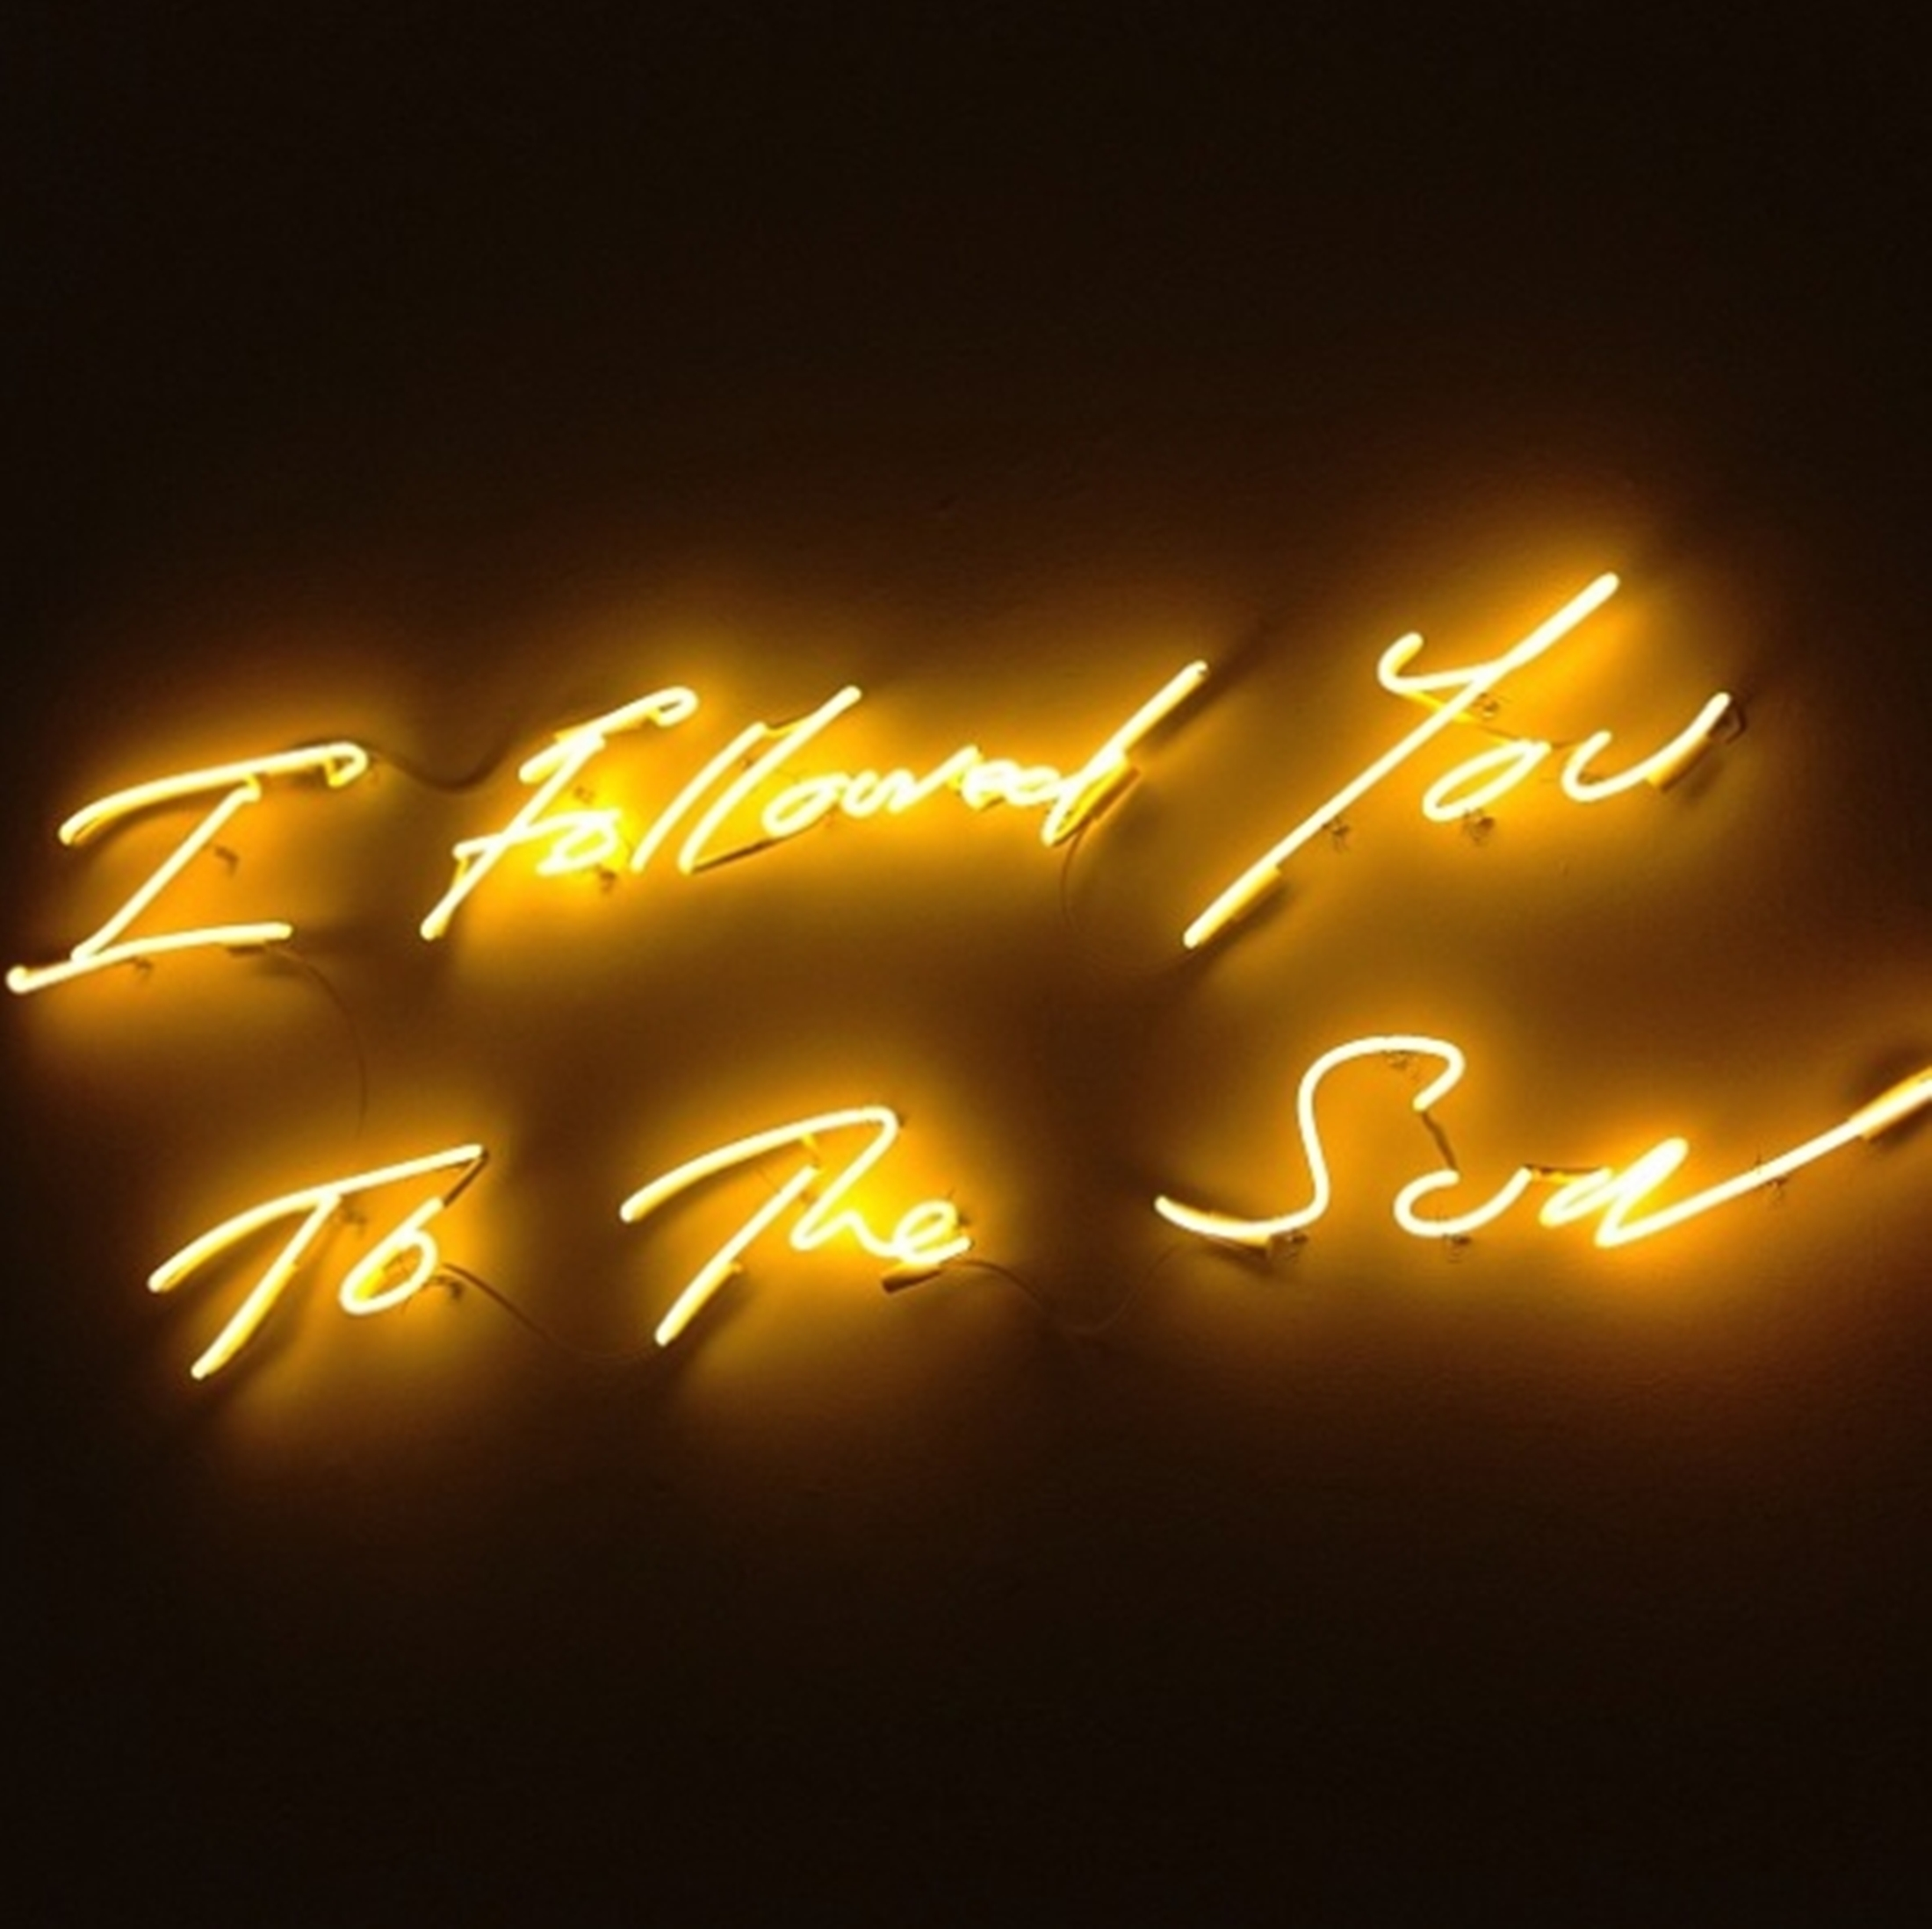 My favorite, the sunny and bright neon sculpture